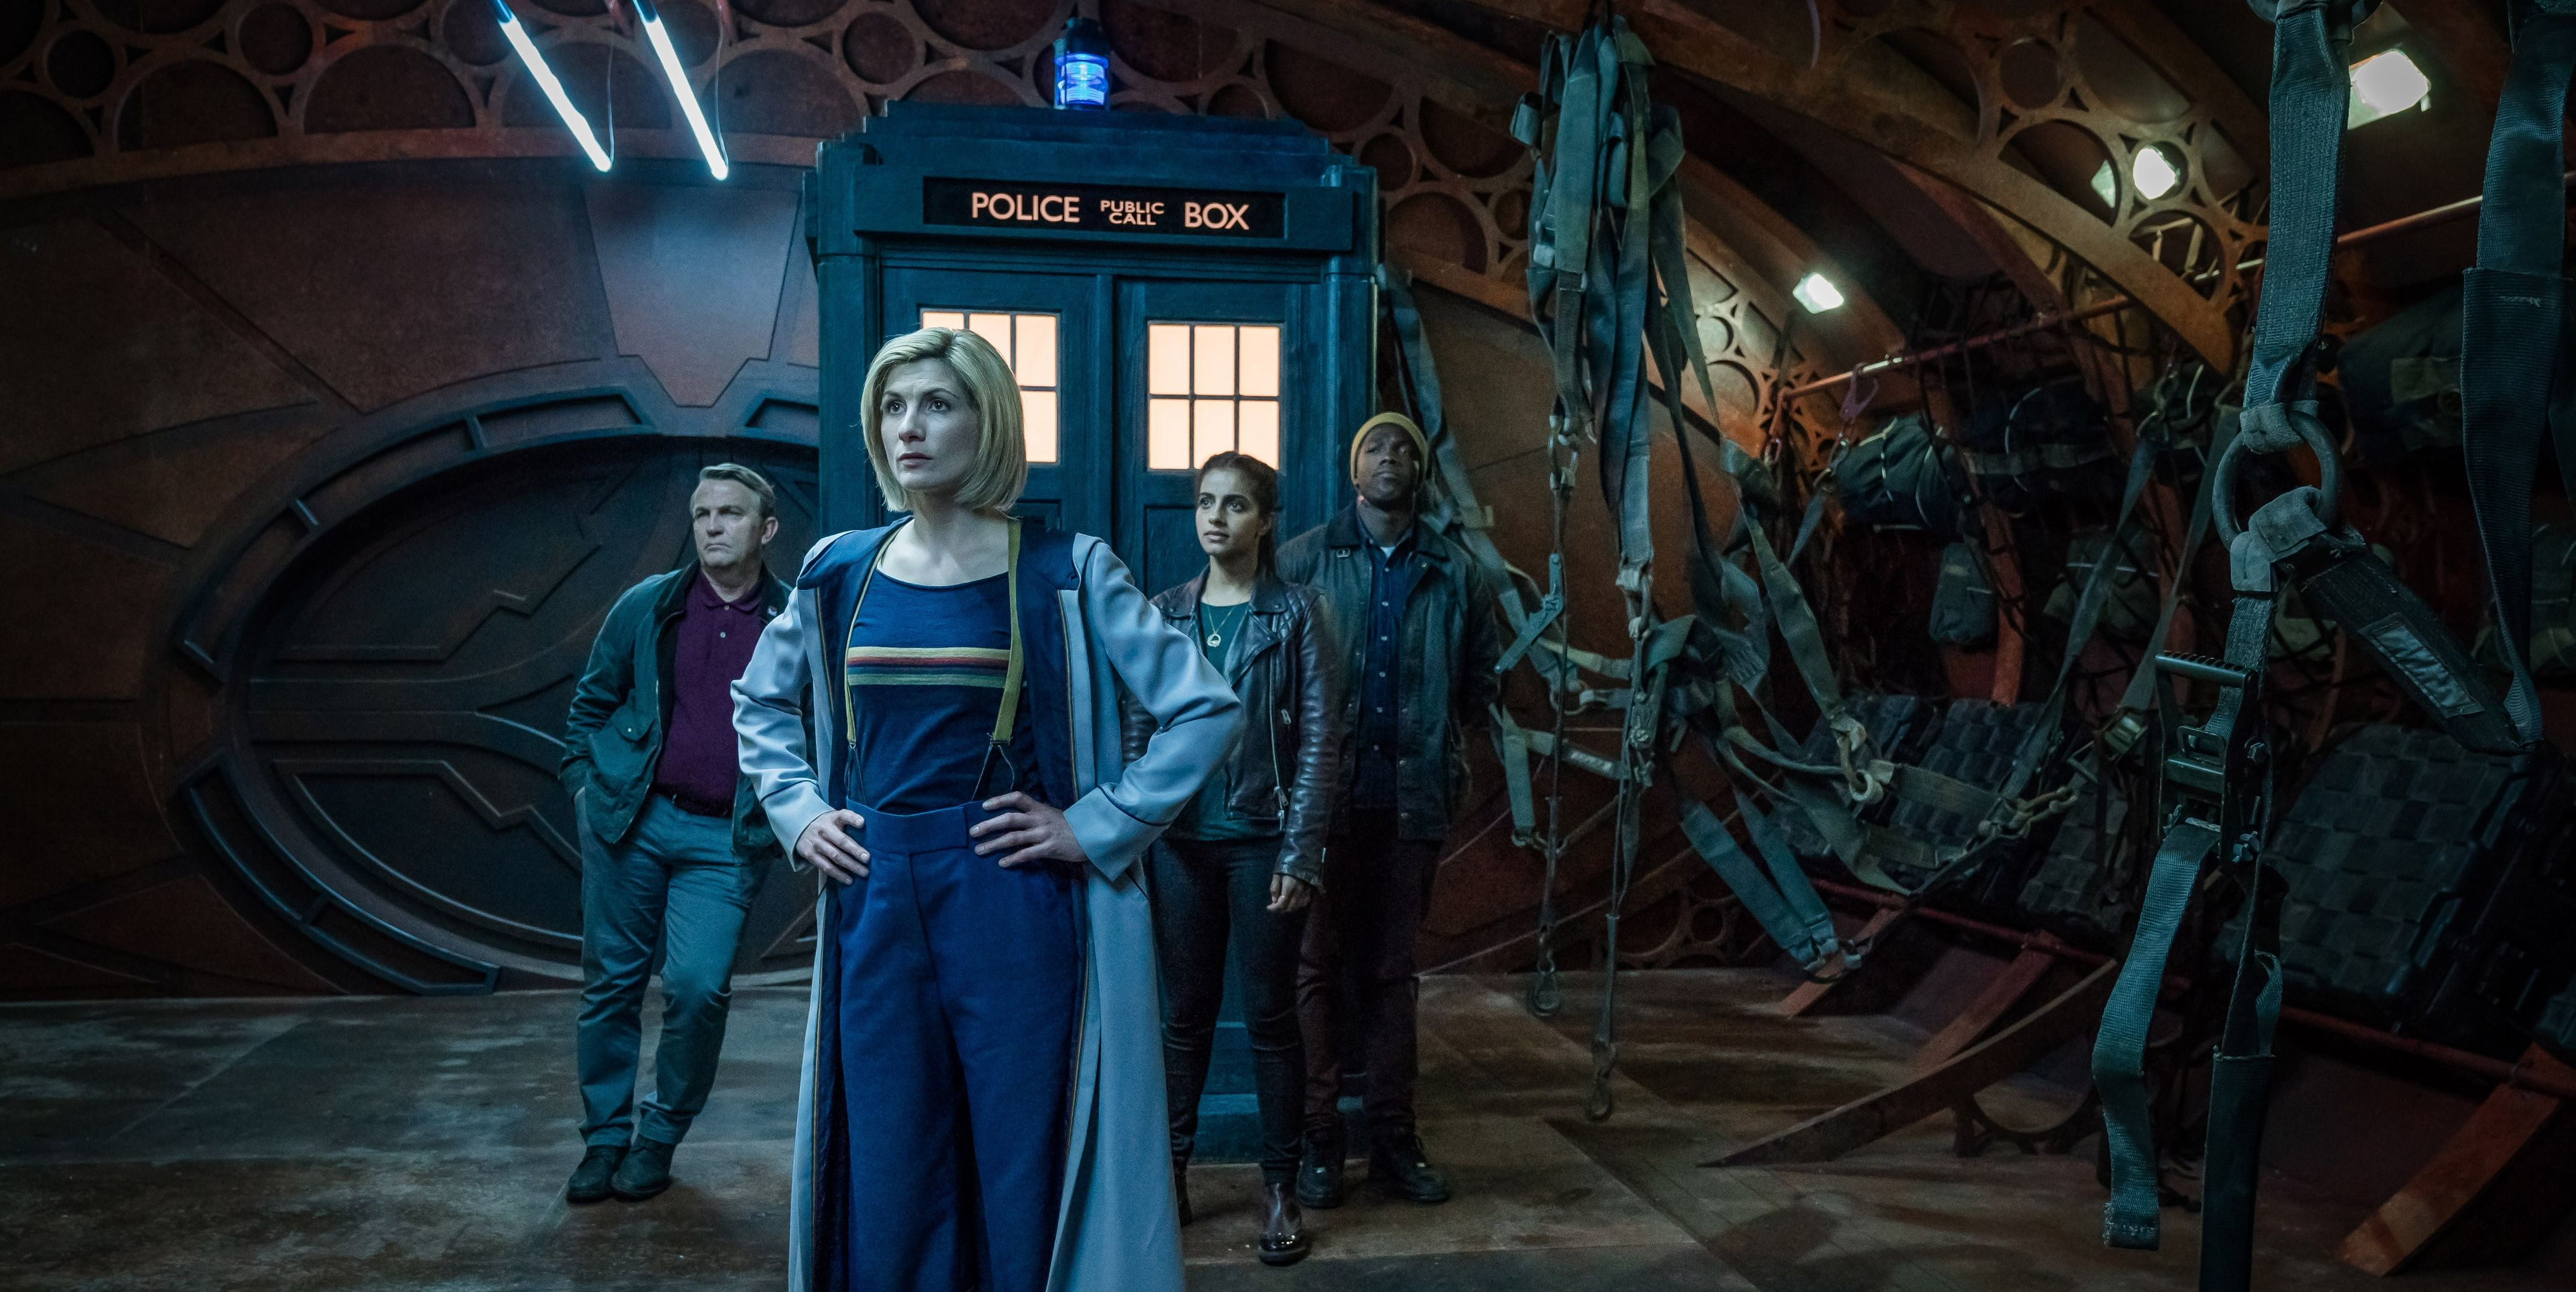 Jodie Whittaker, Bradley Walsh, Tosin Cole and Mandip Gill in Doctor Who series 11